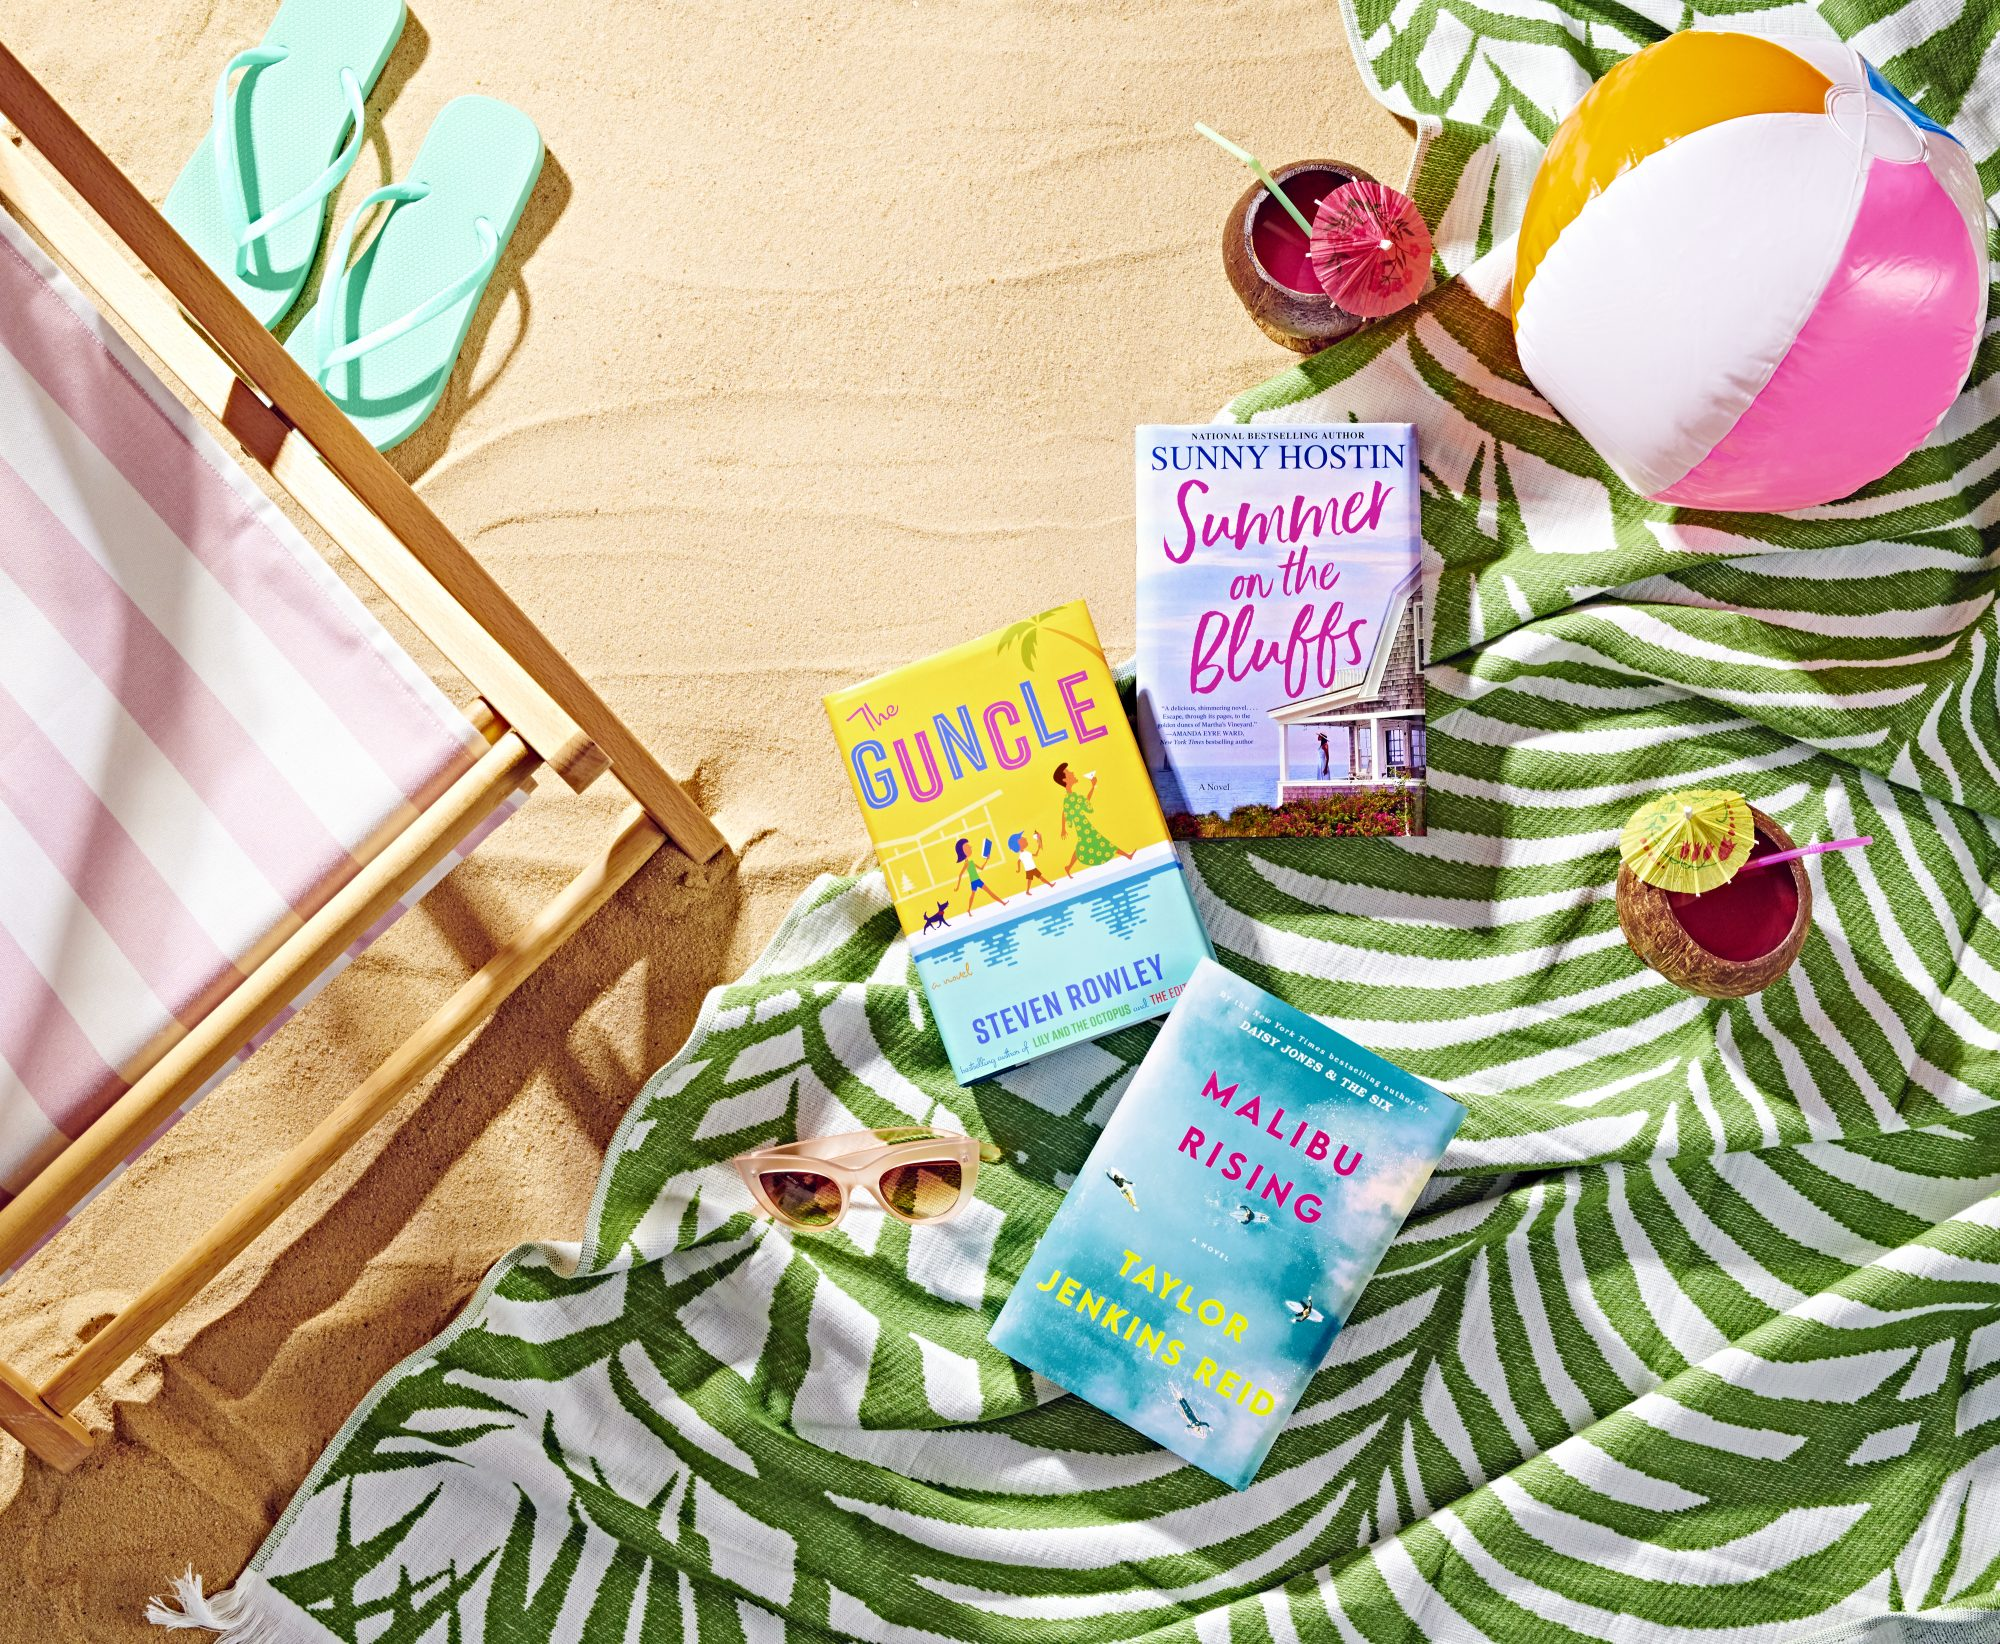 three books laying on towel at the beach, surrounded by a beach chair, flip flops, inflatable ball, and drinks: best beach reads 2021